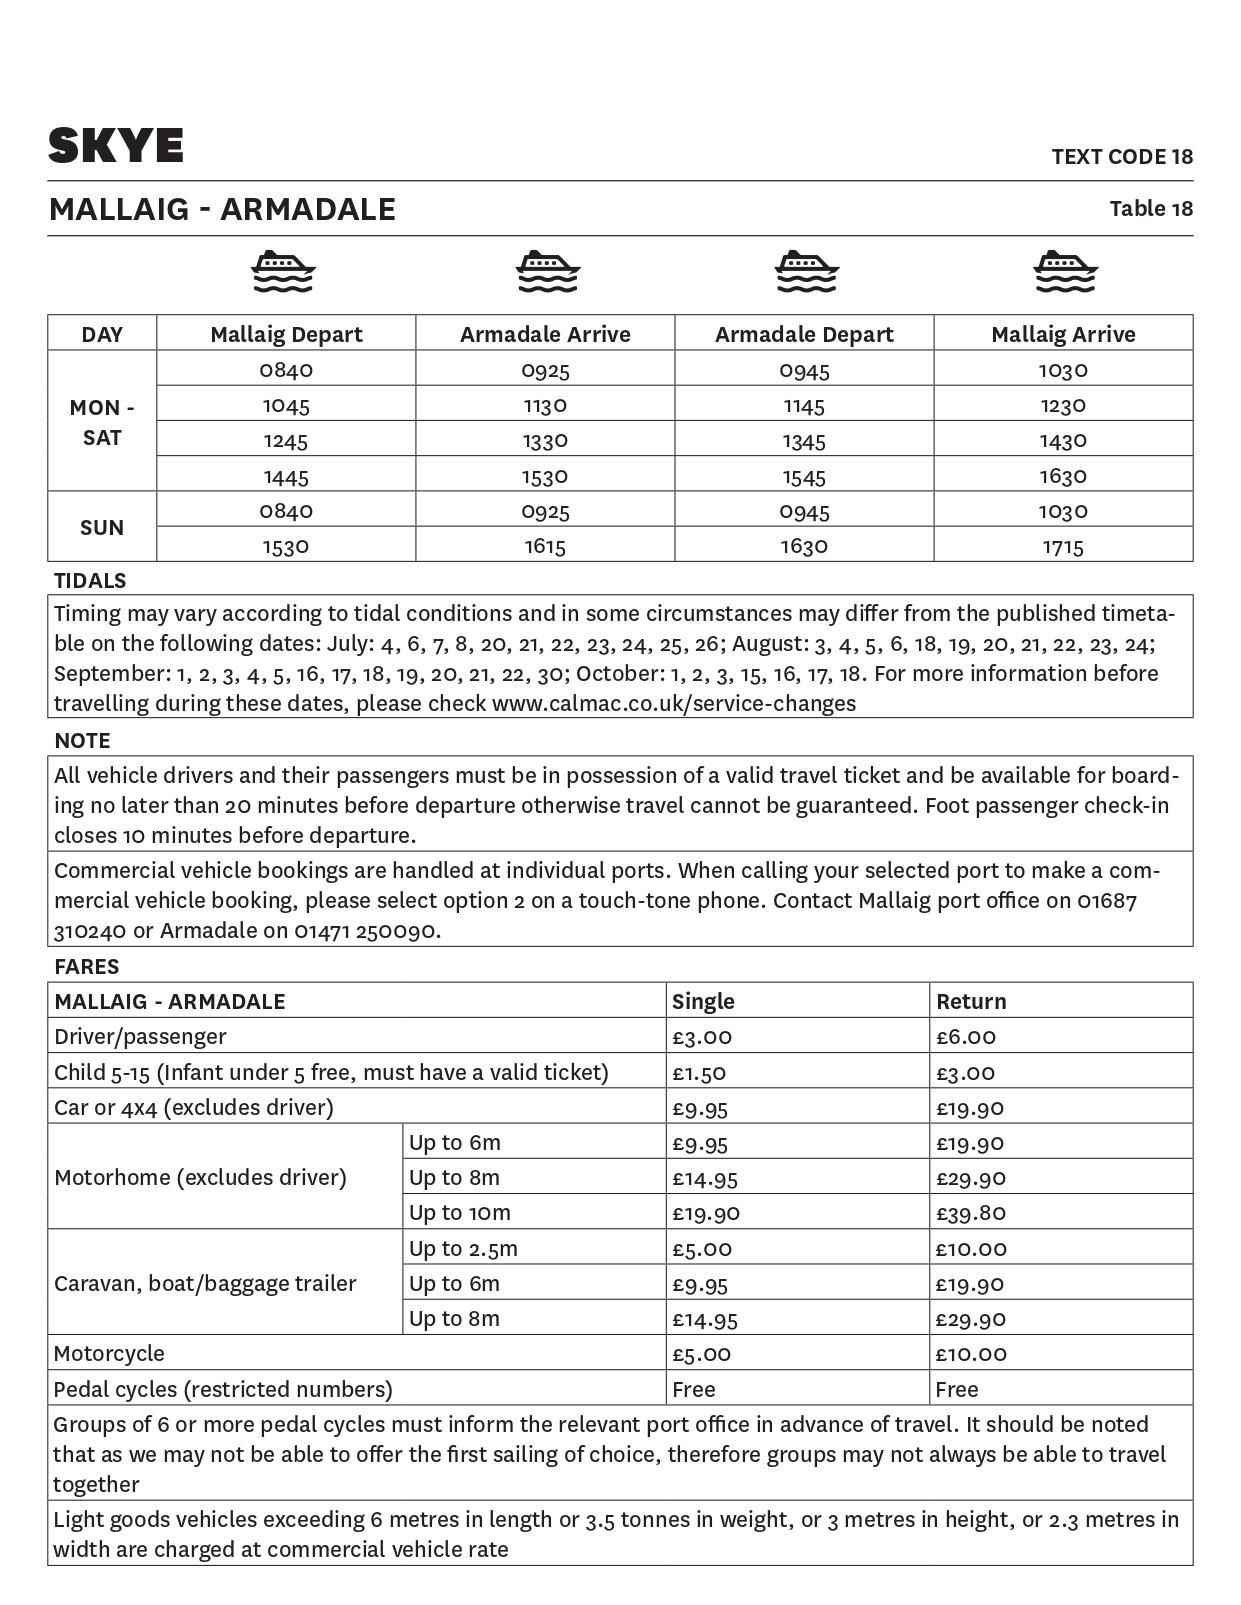 Table 18 Mallaig - Armadale - Temporary timetable - This image is currently not accessible to screen readers. Please phone 0800 066 5000 for timetable details